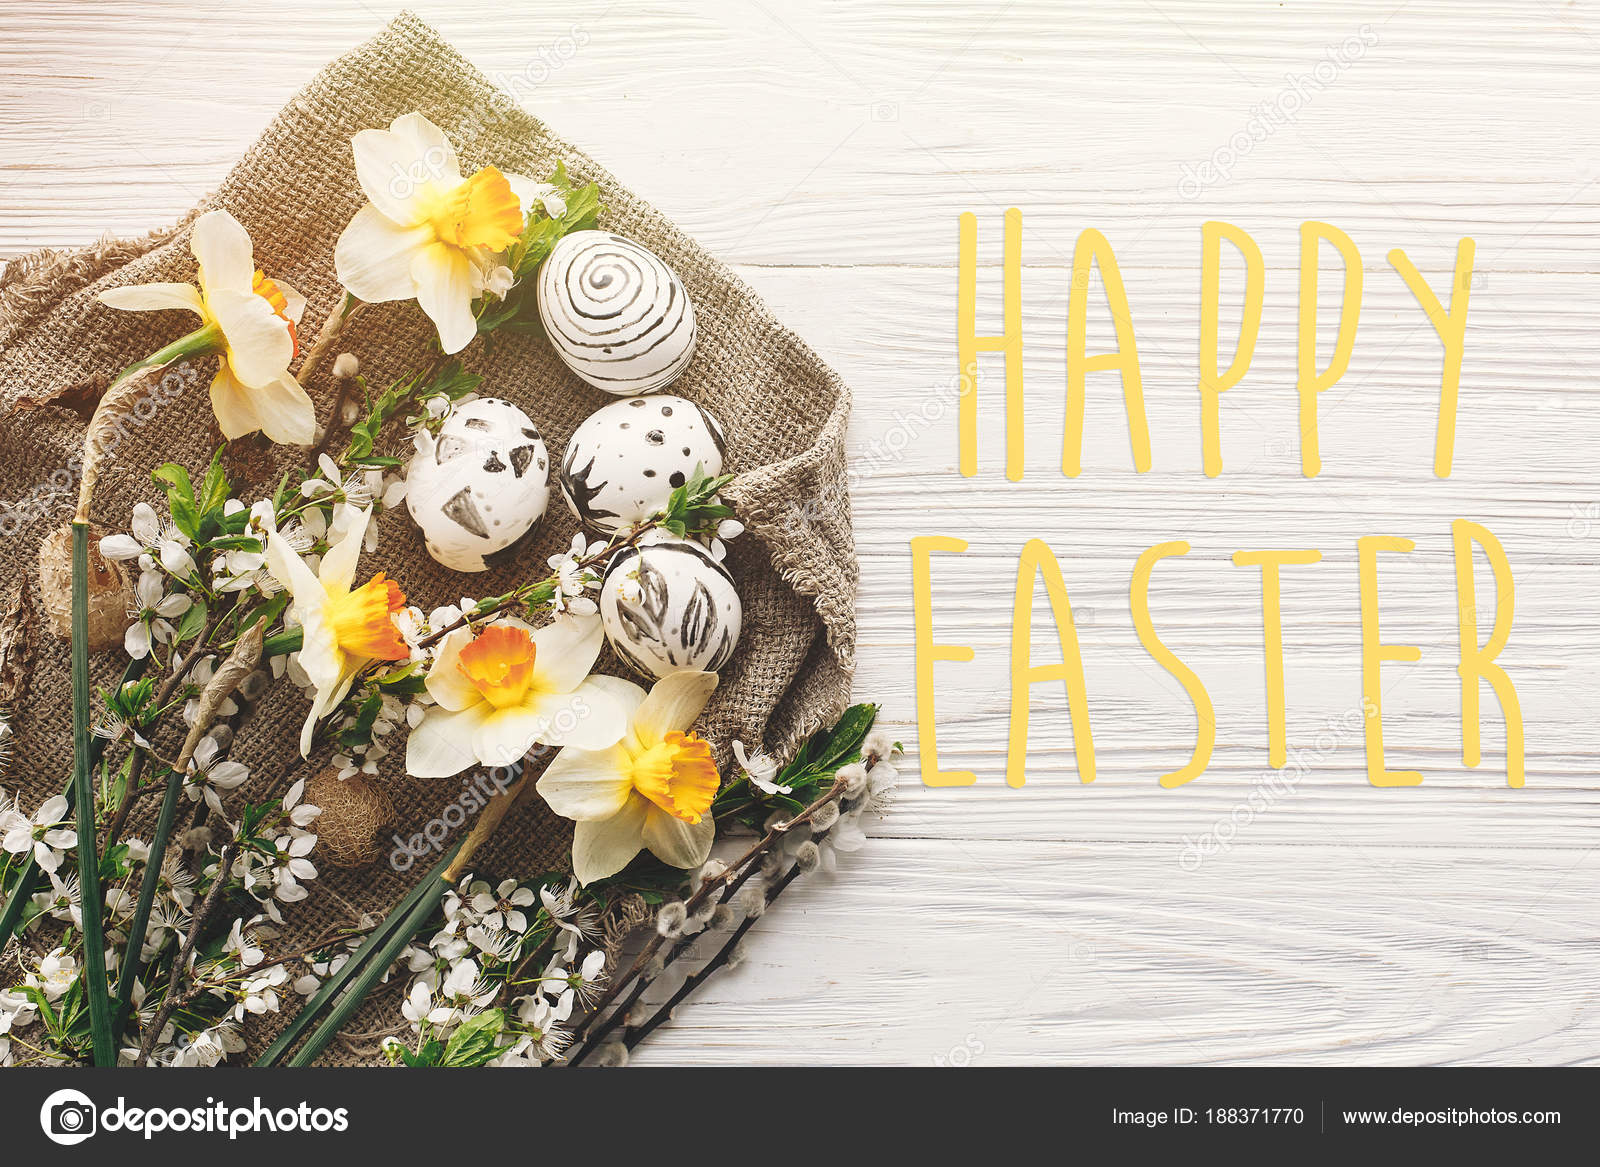 Happy Easter Text Season Greetings Card Stylish Easter Flat Lay